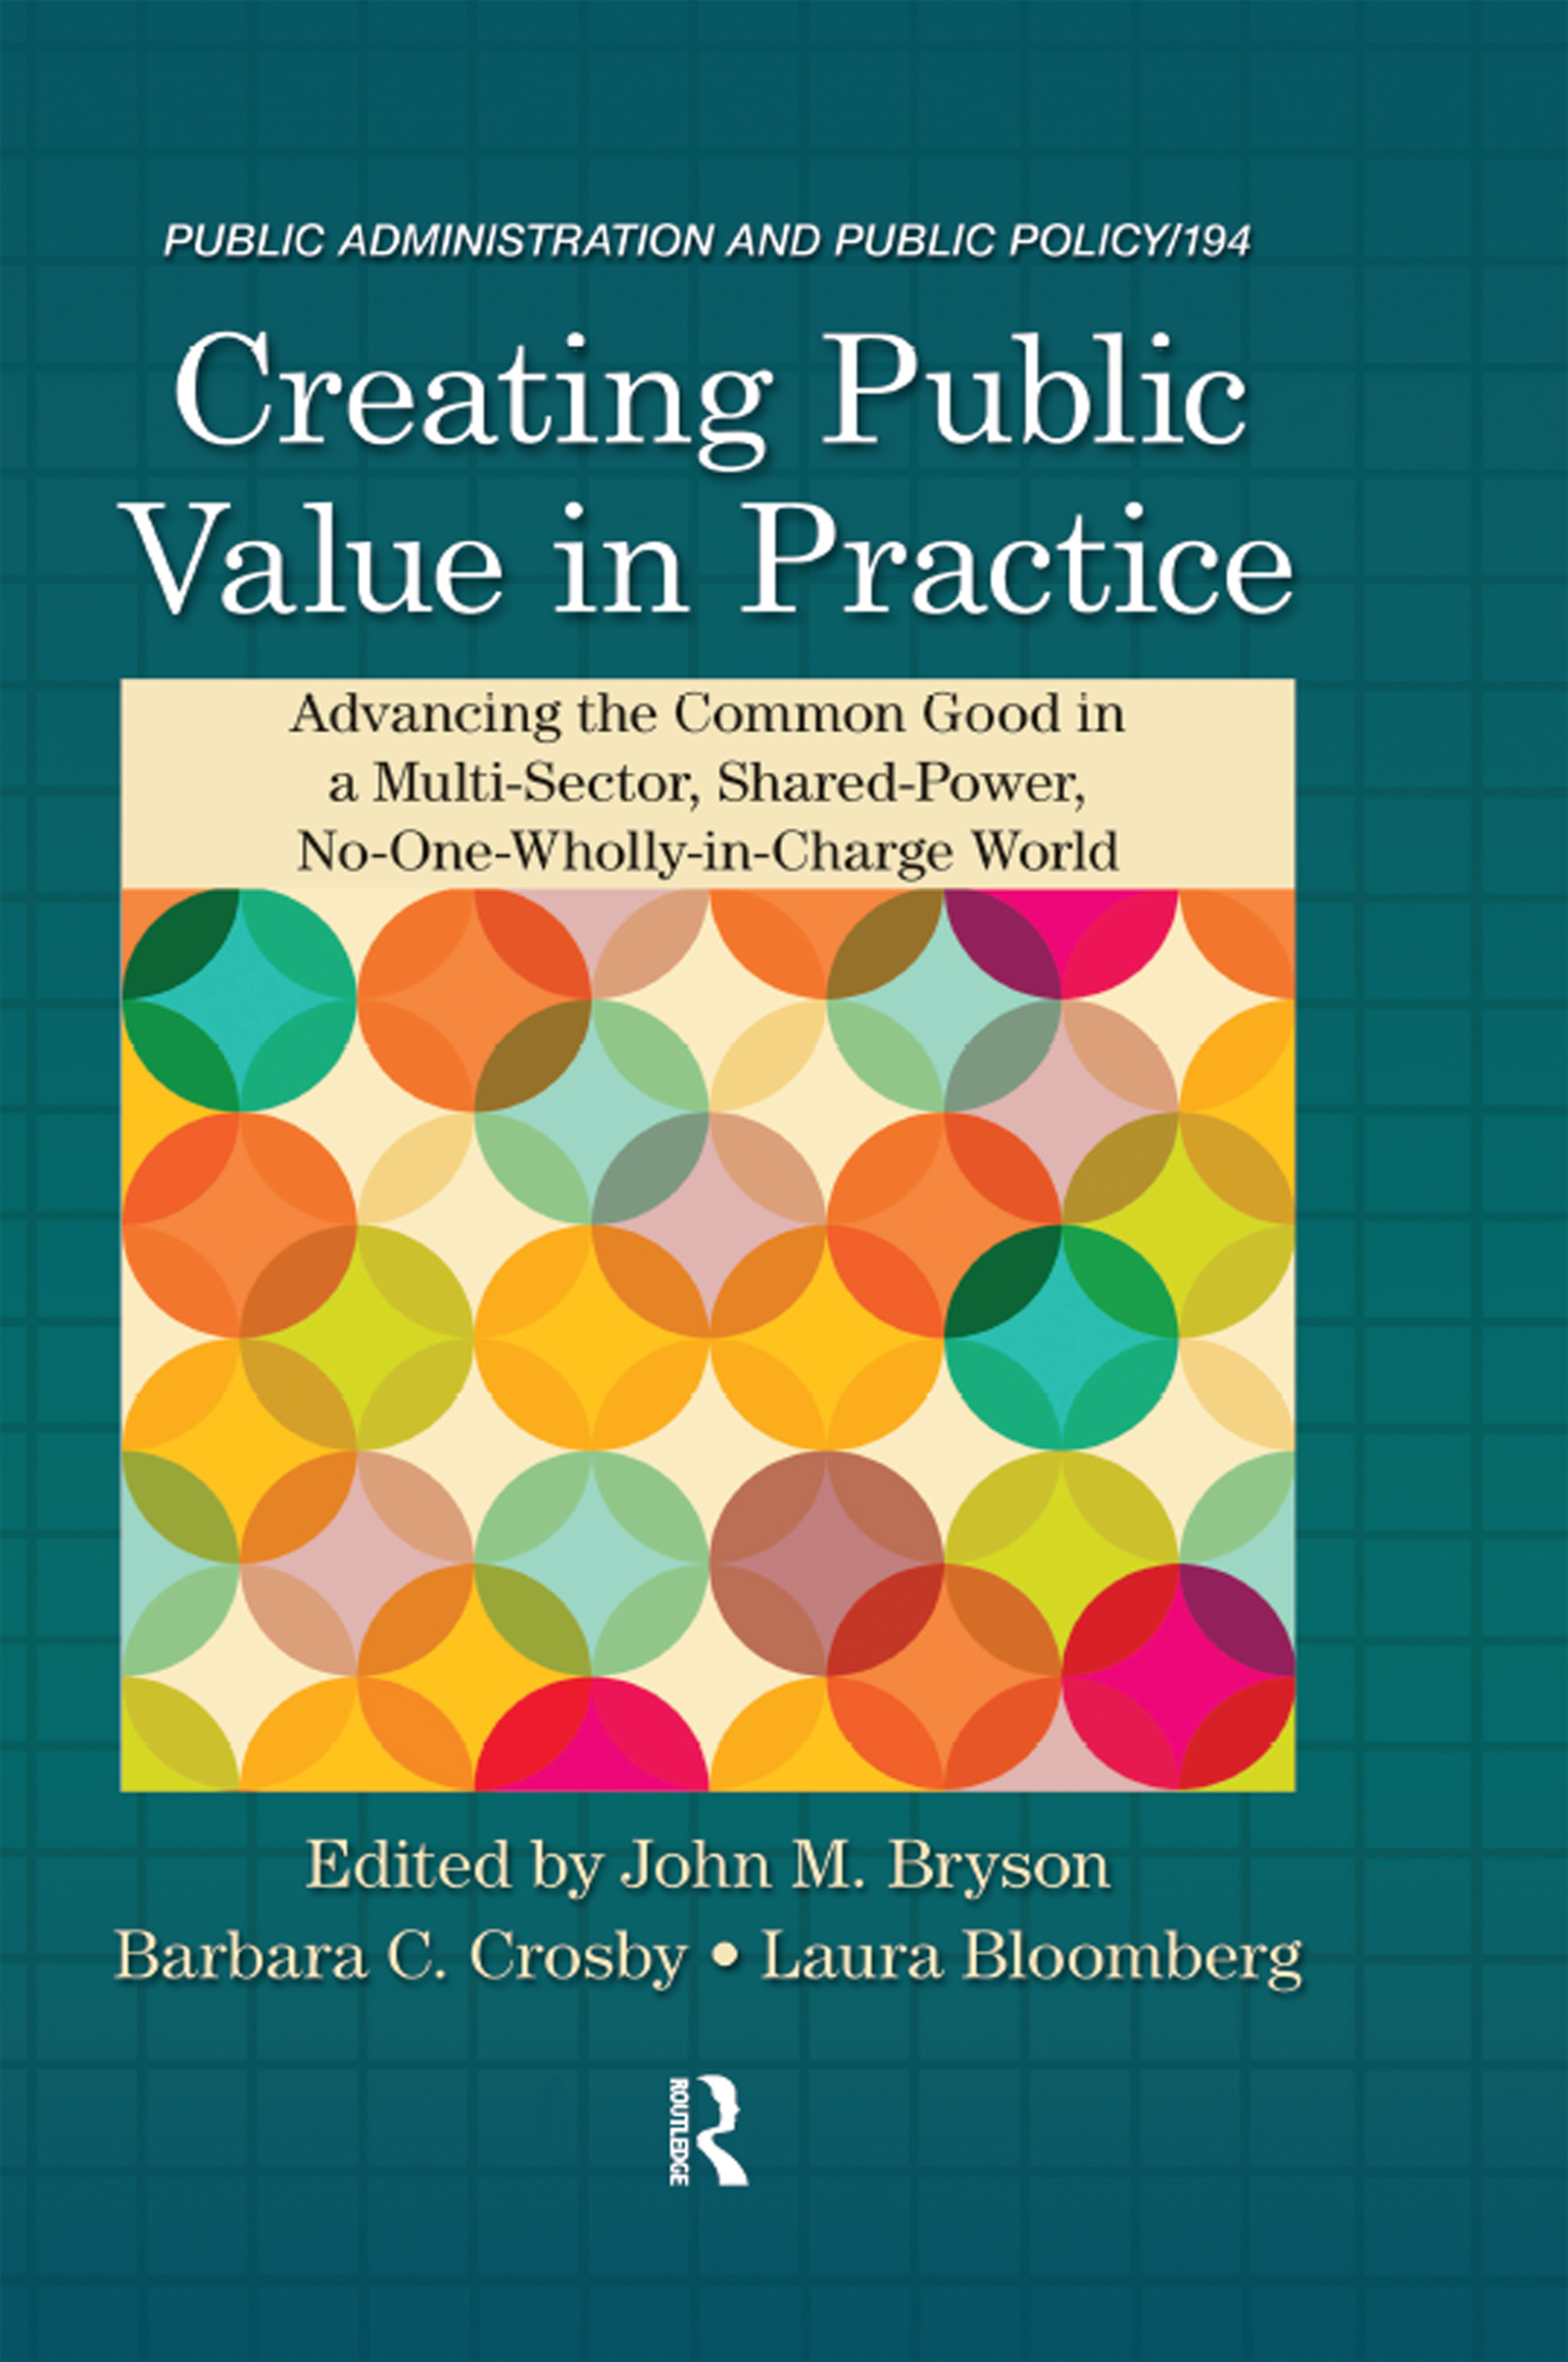 Creating Public Value in Practice: Advancing the Common Good in a Multi-Sector, Shared-Power, No-One-Wholly-in-Charge World book cover